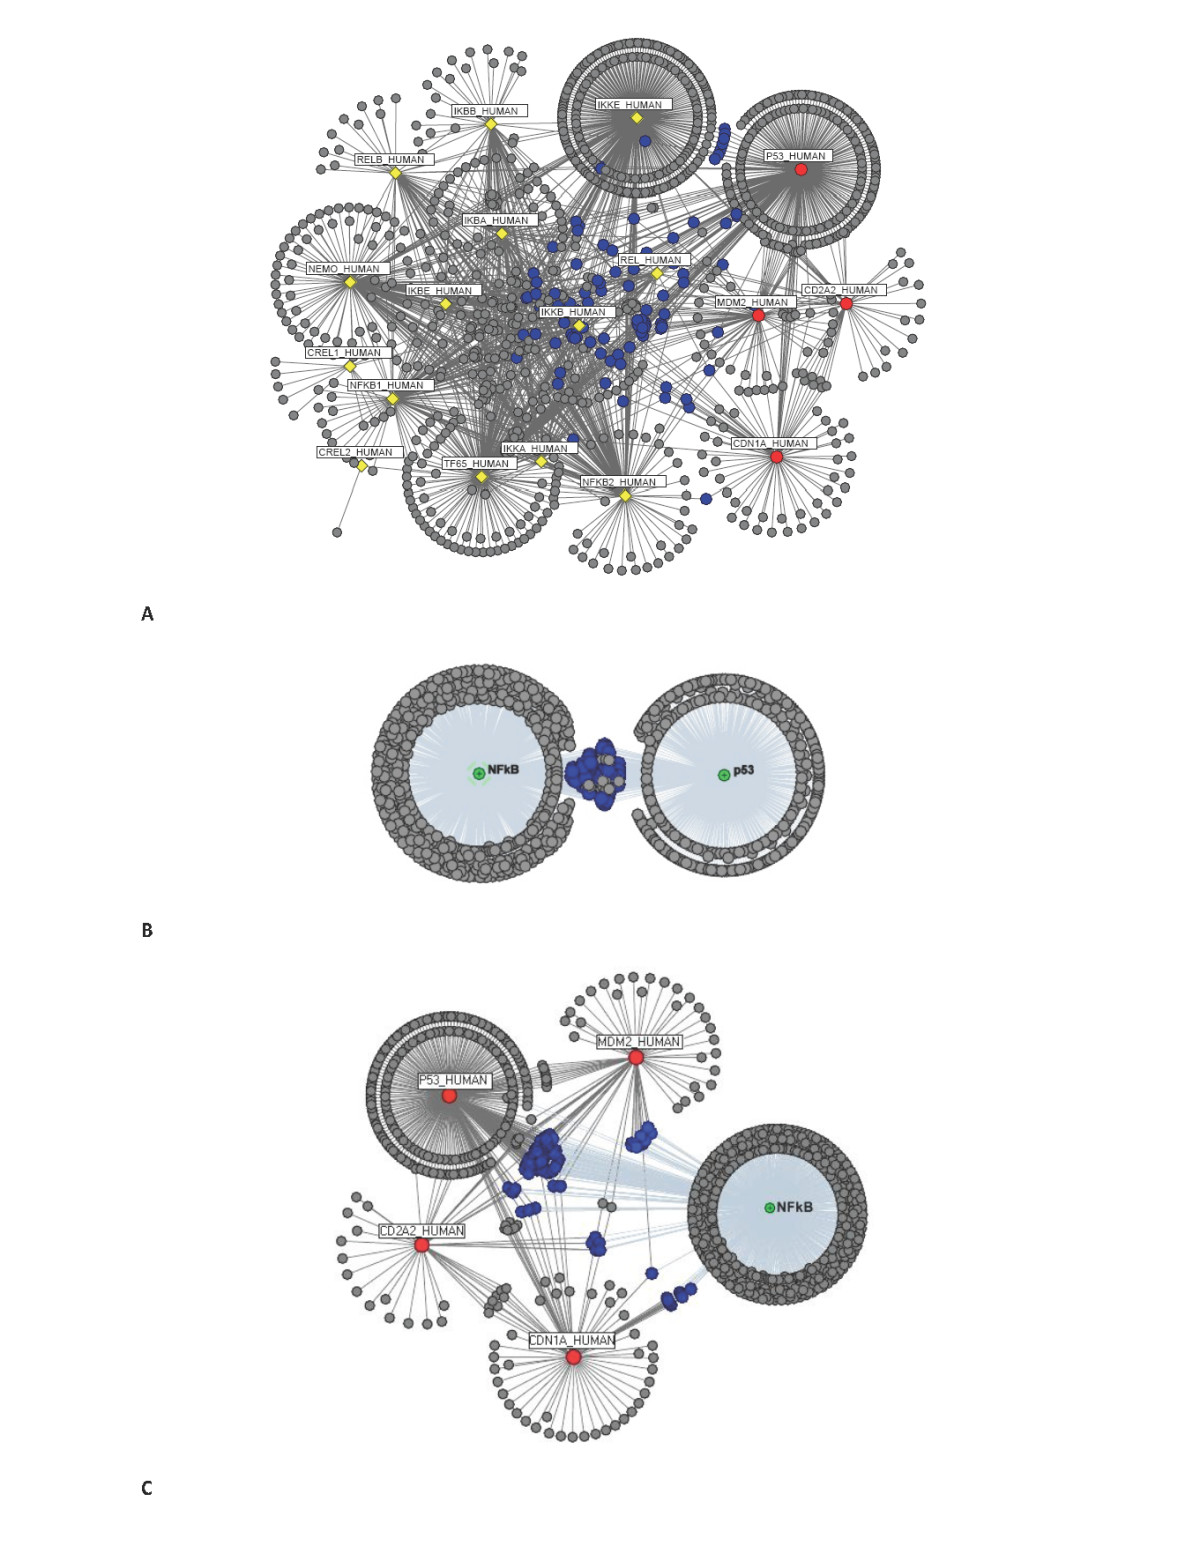 https://static-content.springer.com/image/art%3A10.1186%2F1471-2105-10-370/MediaObjects/12859_2009_Article_3100_Fig4_HTML.jpg